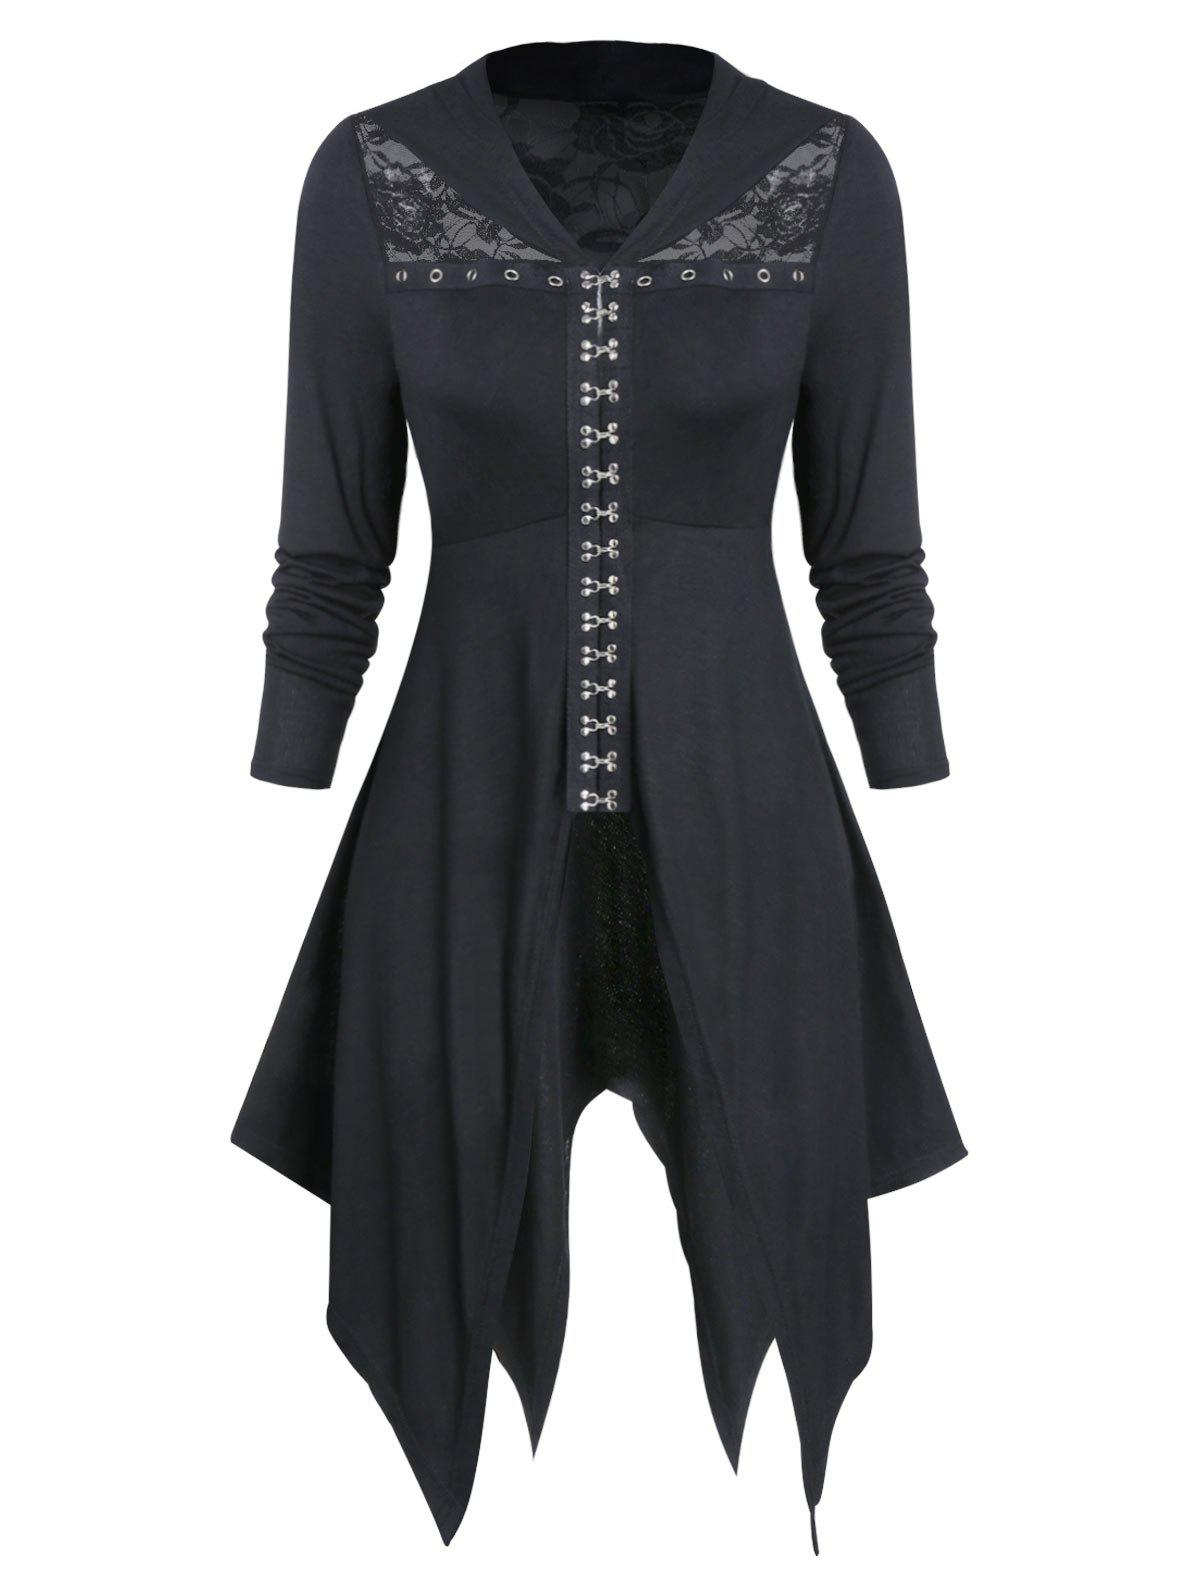 Shops Lace Insert Hook and Eye Gothic Hanky Hem Top